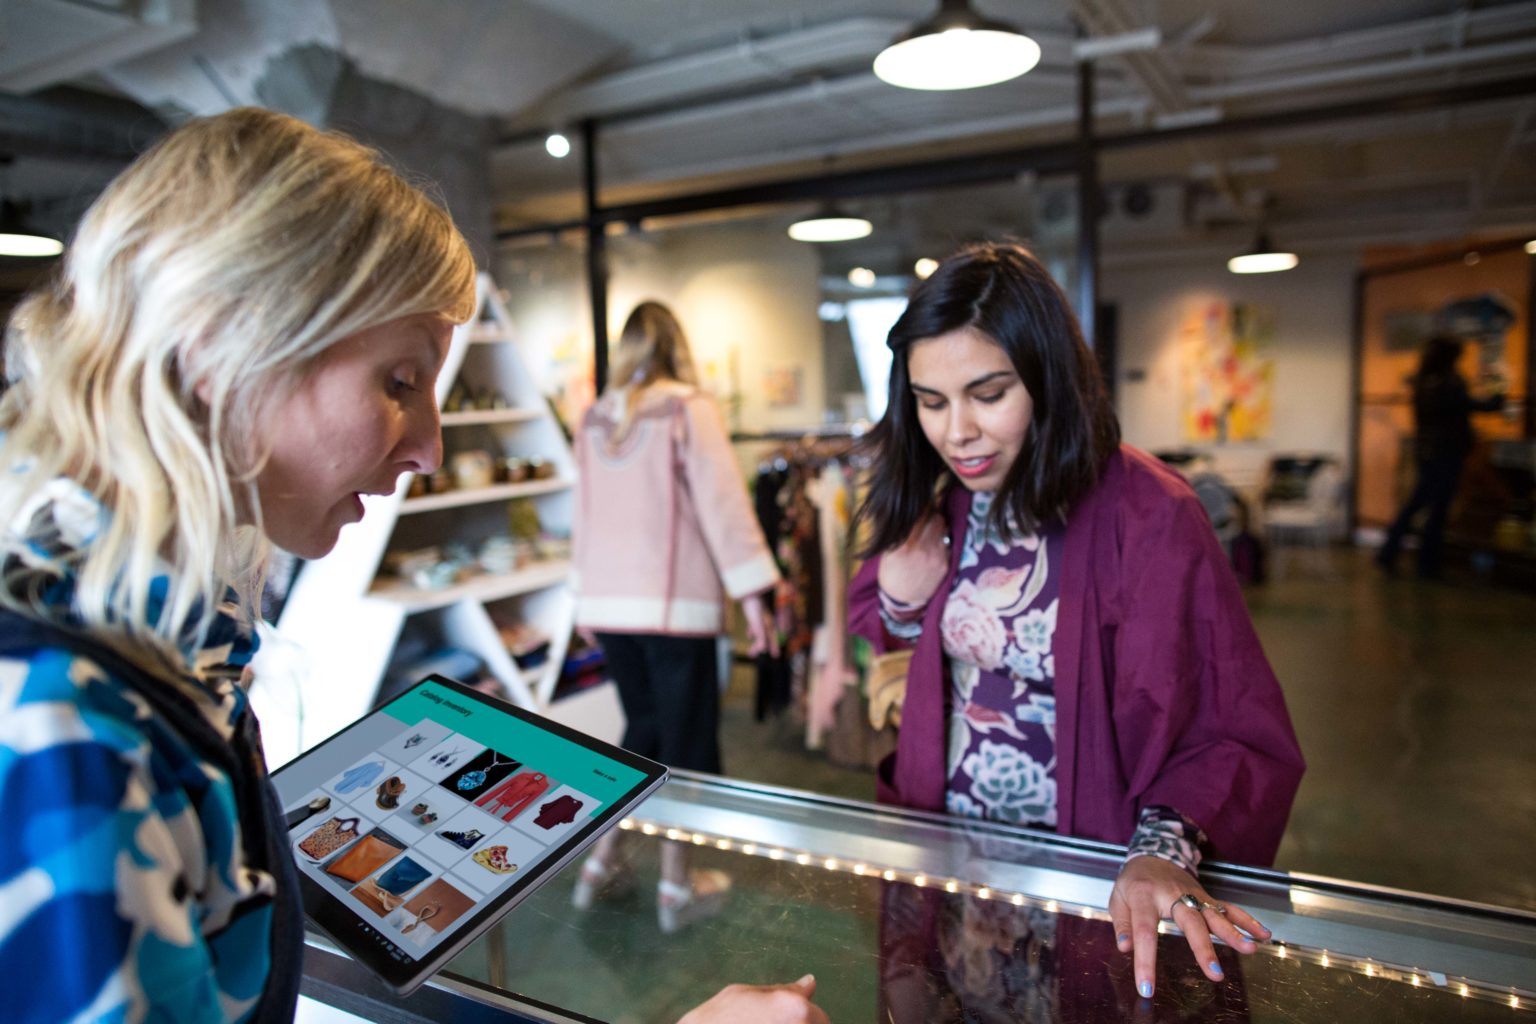 Retail worker helping a customer using a Surface Laptop